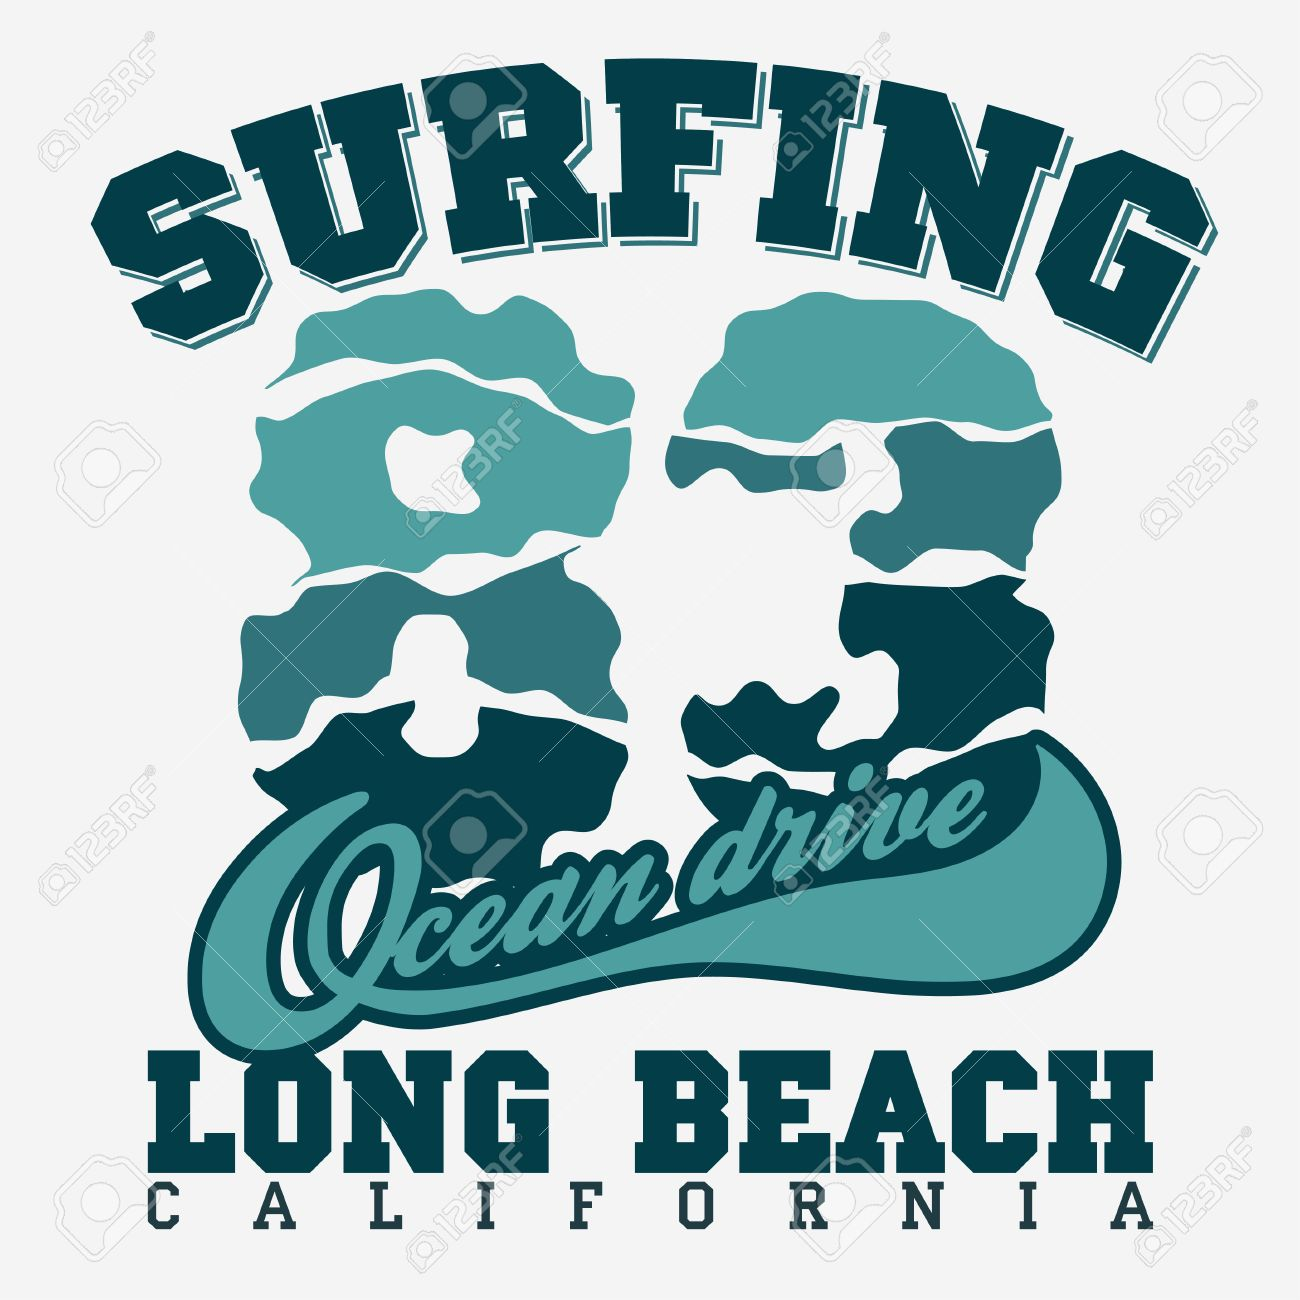 Surfing t-shirt graphic design  Long Beach surfing  California